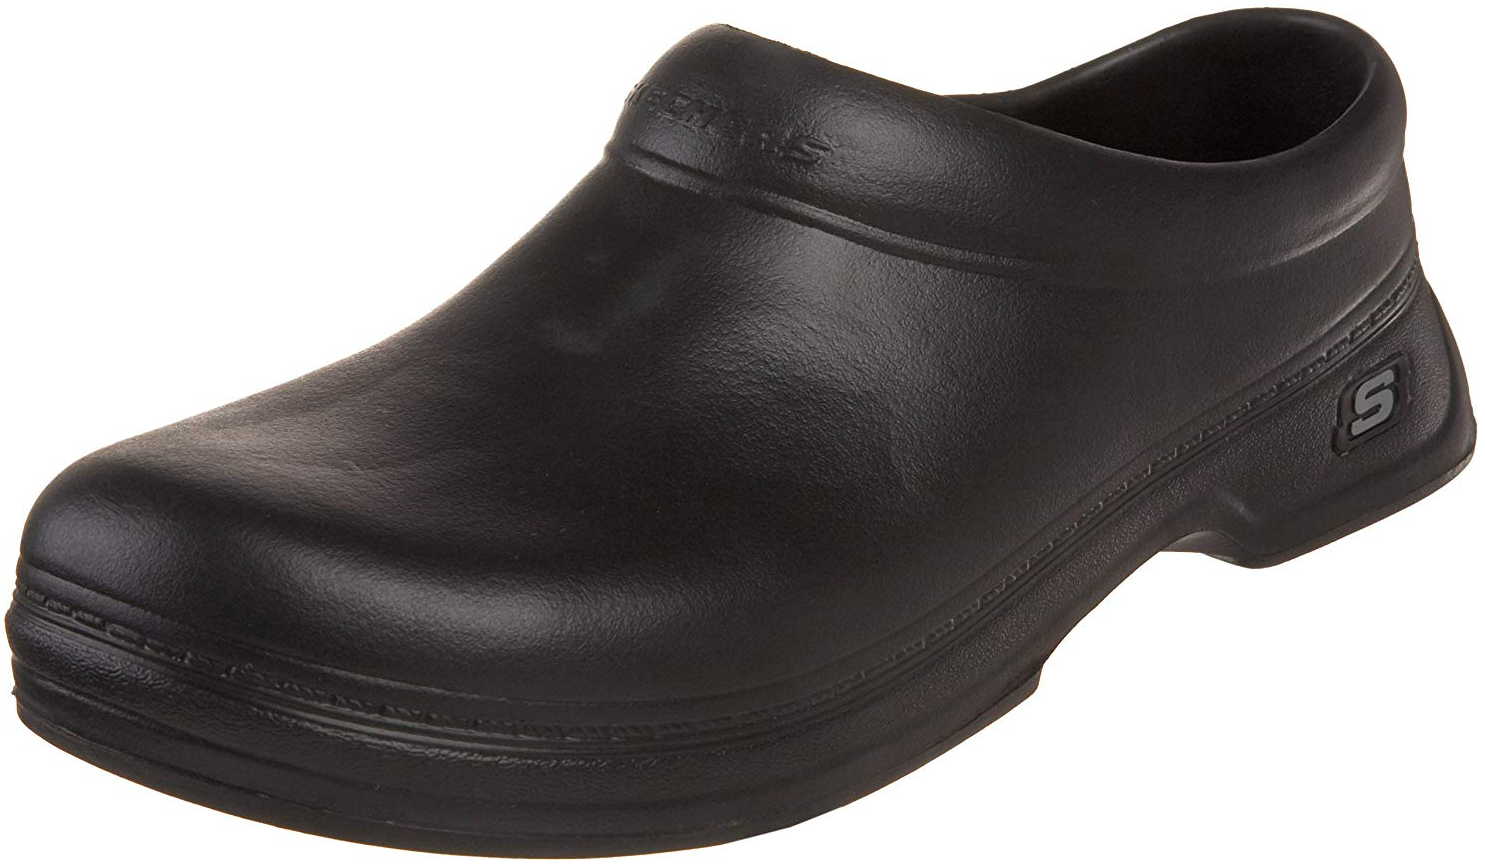 Skechers for Work Men's Balder Slip Resistant Work Clog Review